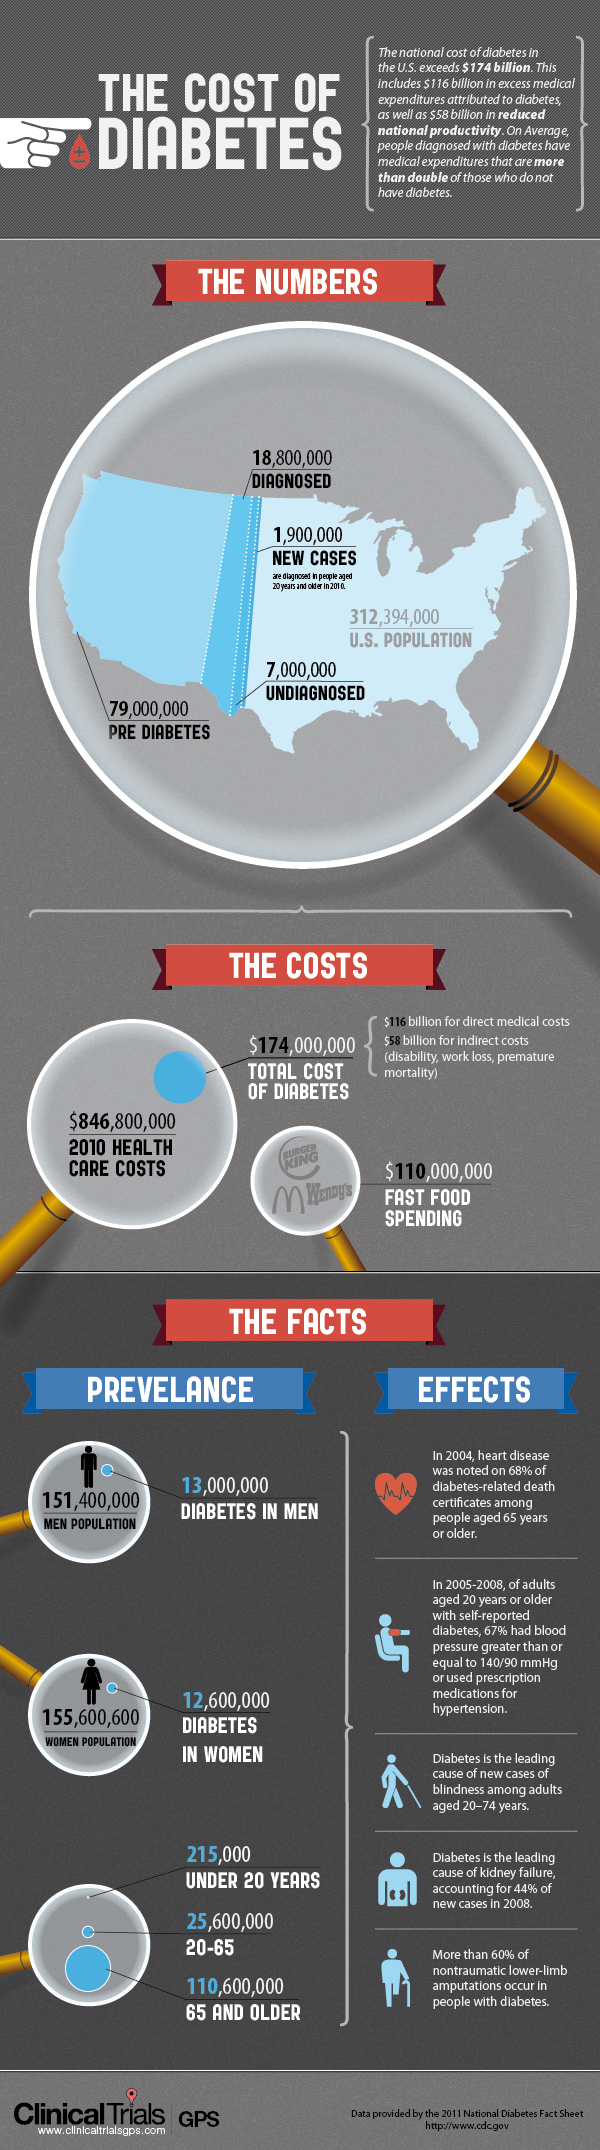 Interesting Facts About Diabetes Statistics